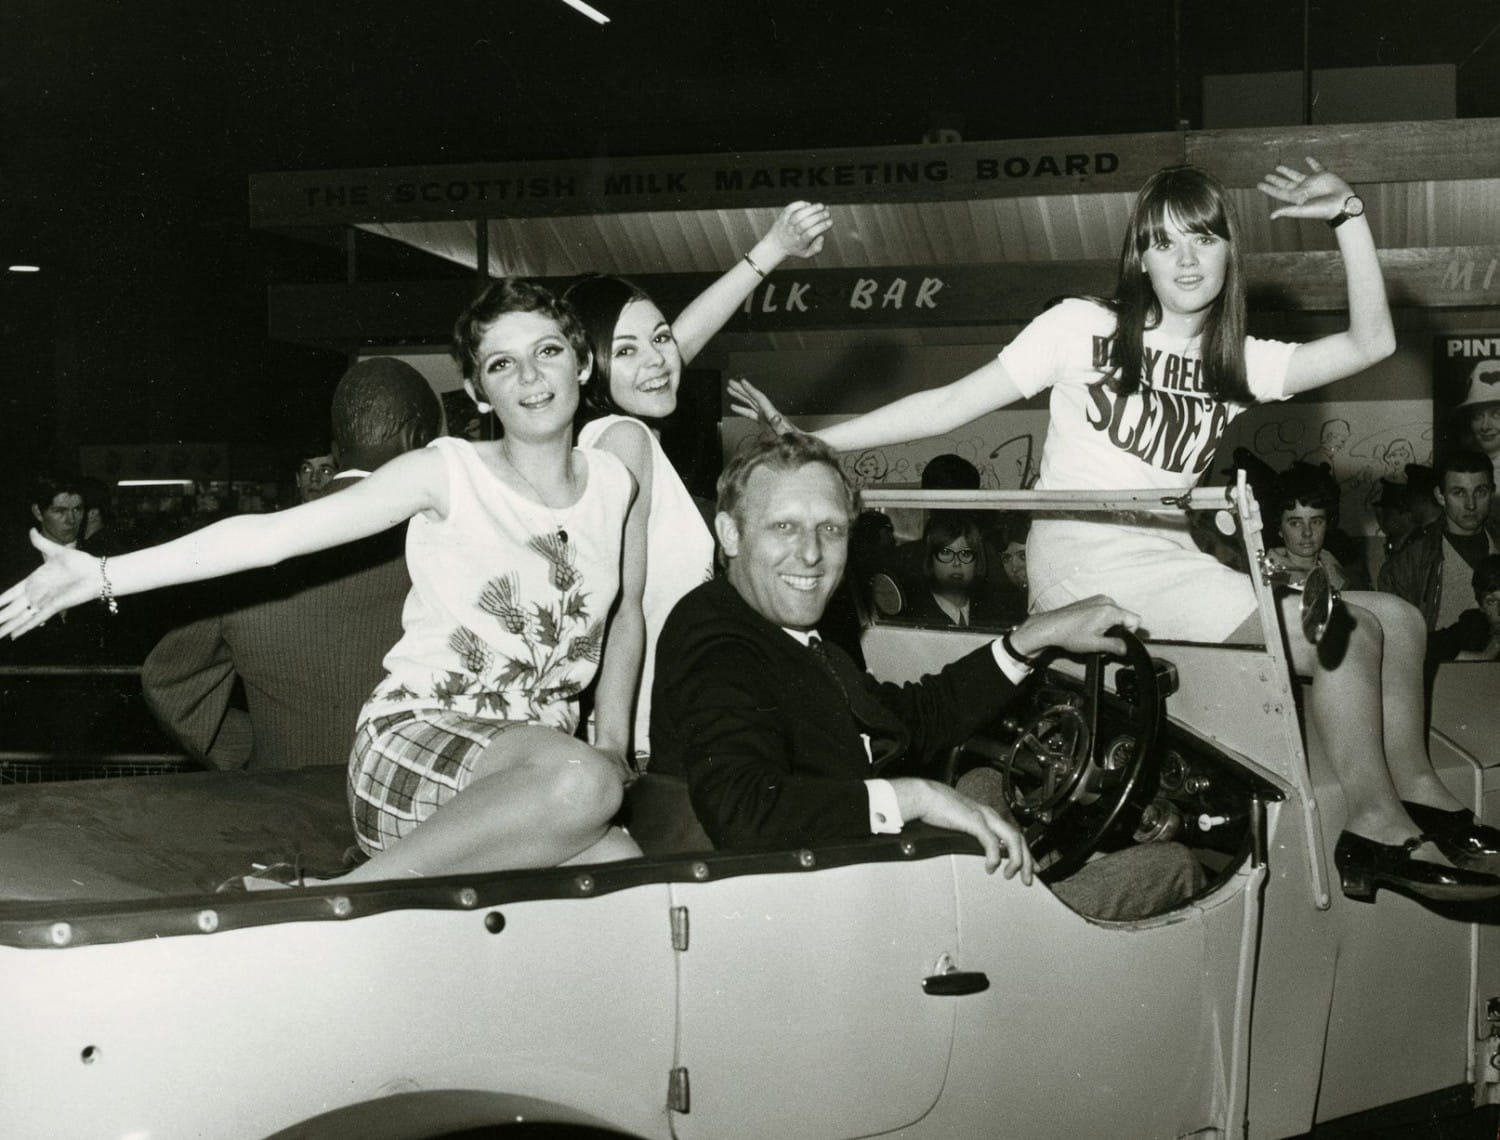 DJ Don Moss picks up some hitchhikers